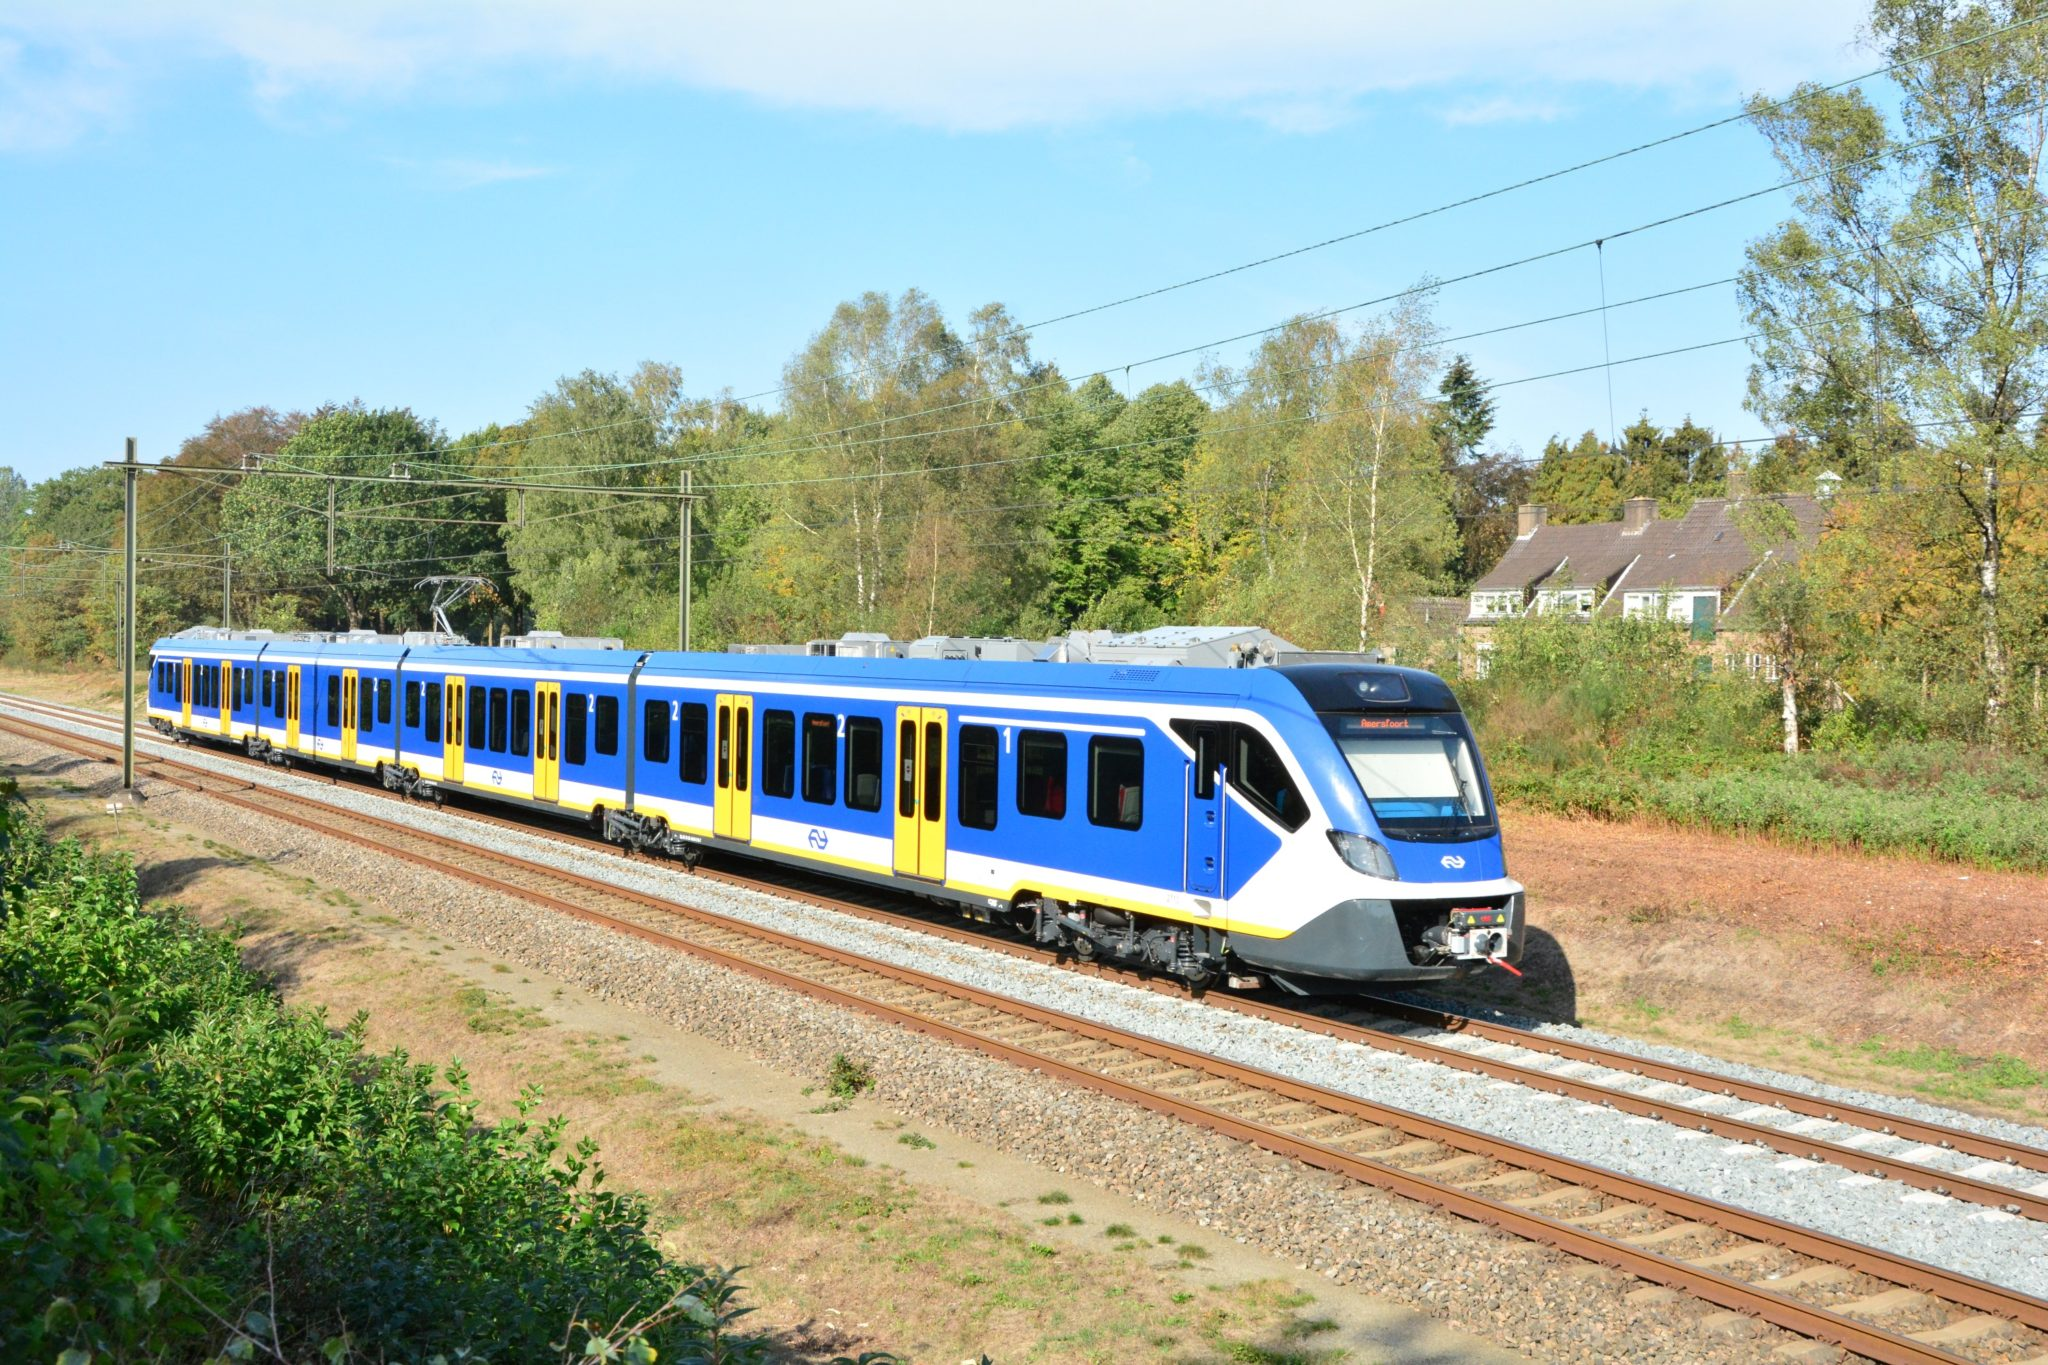 One of the CAF CIVITY trains for NS